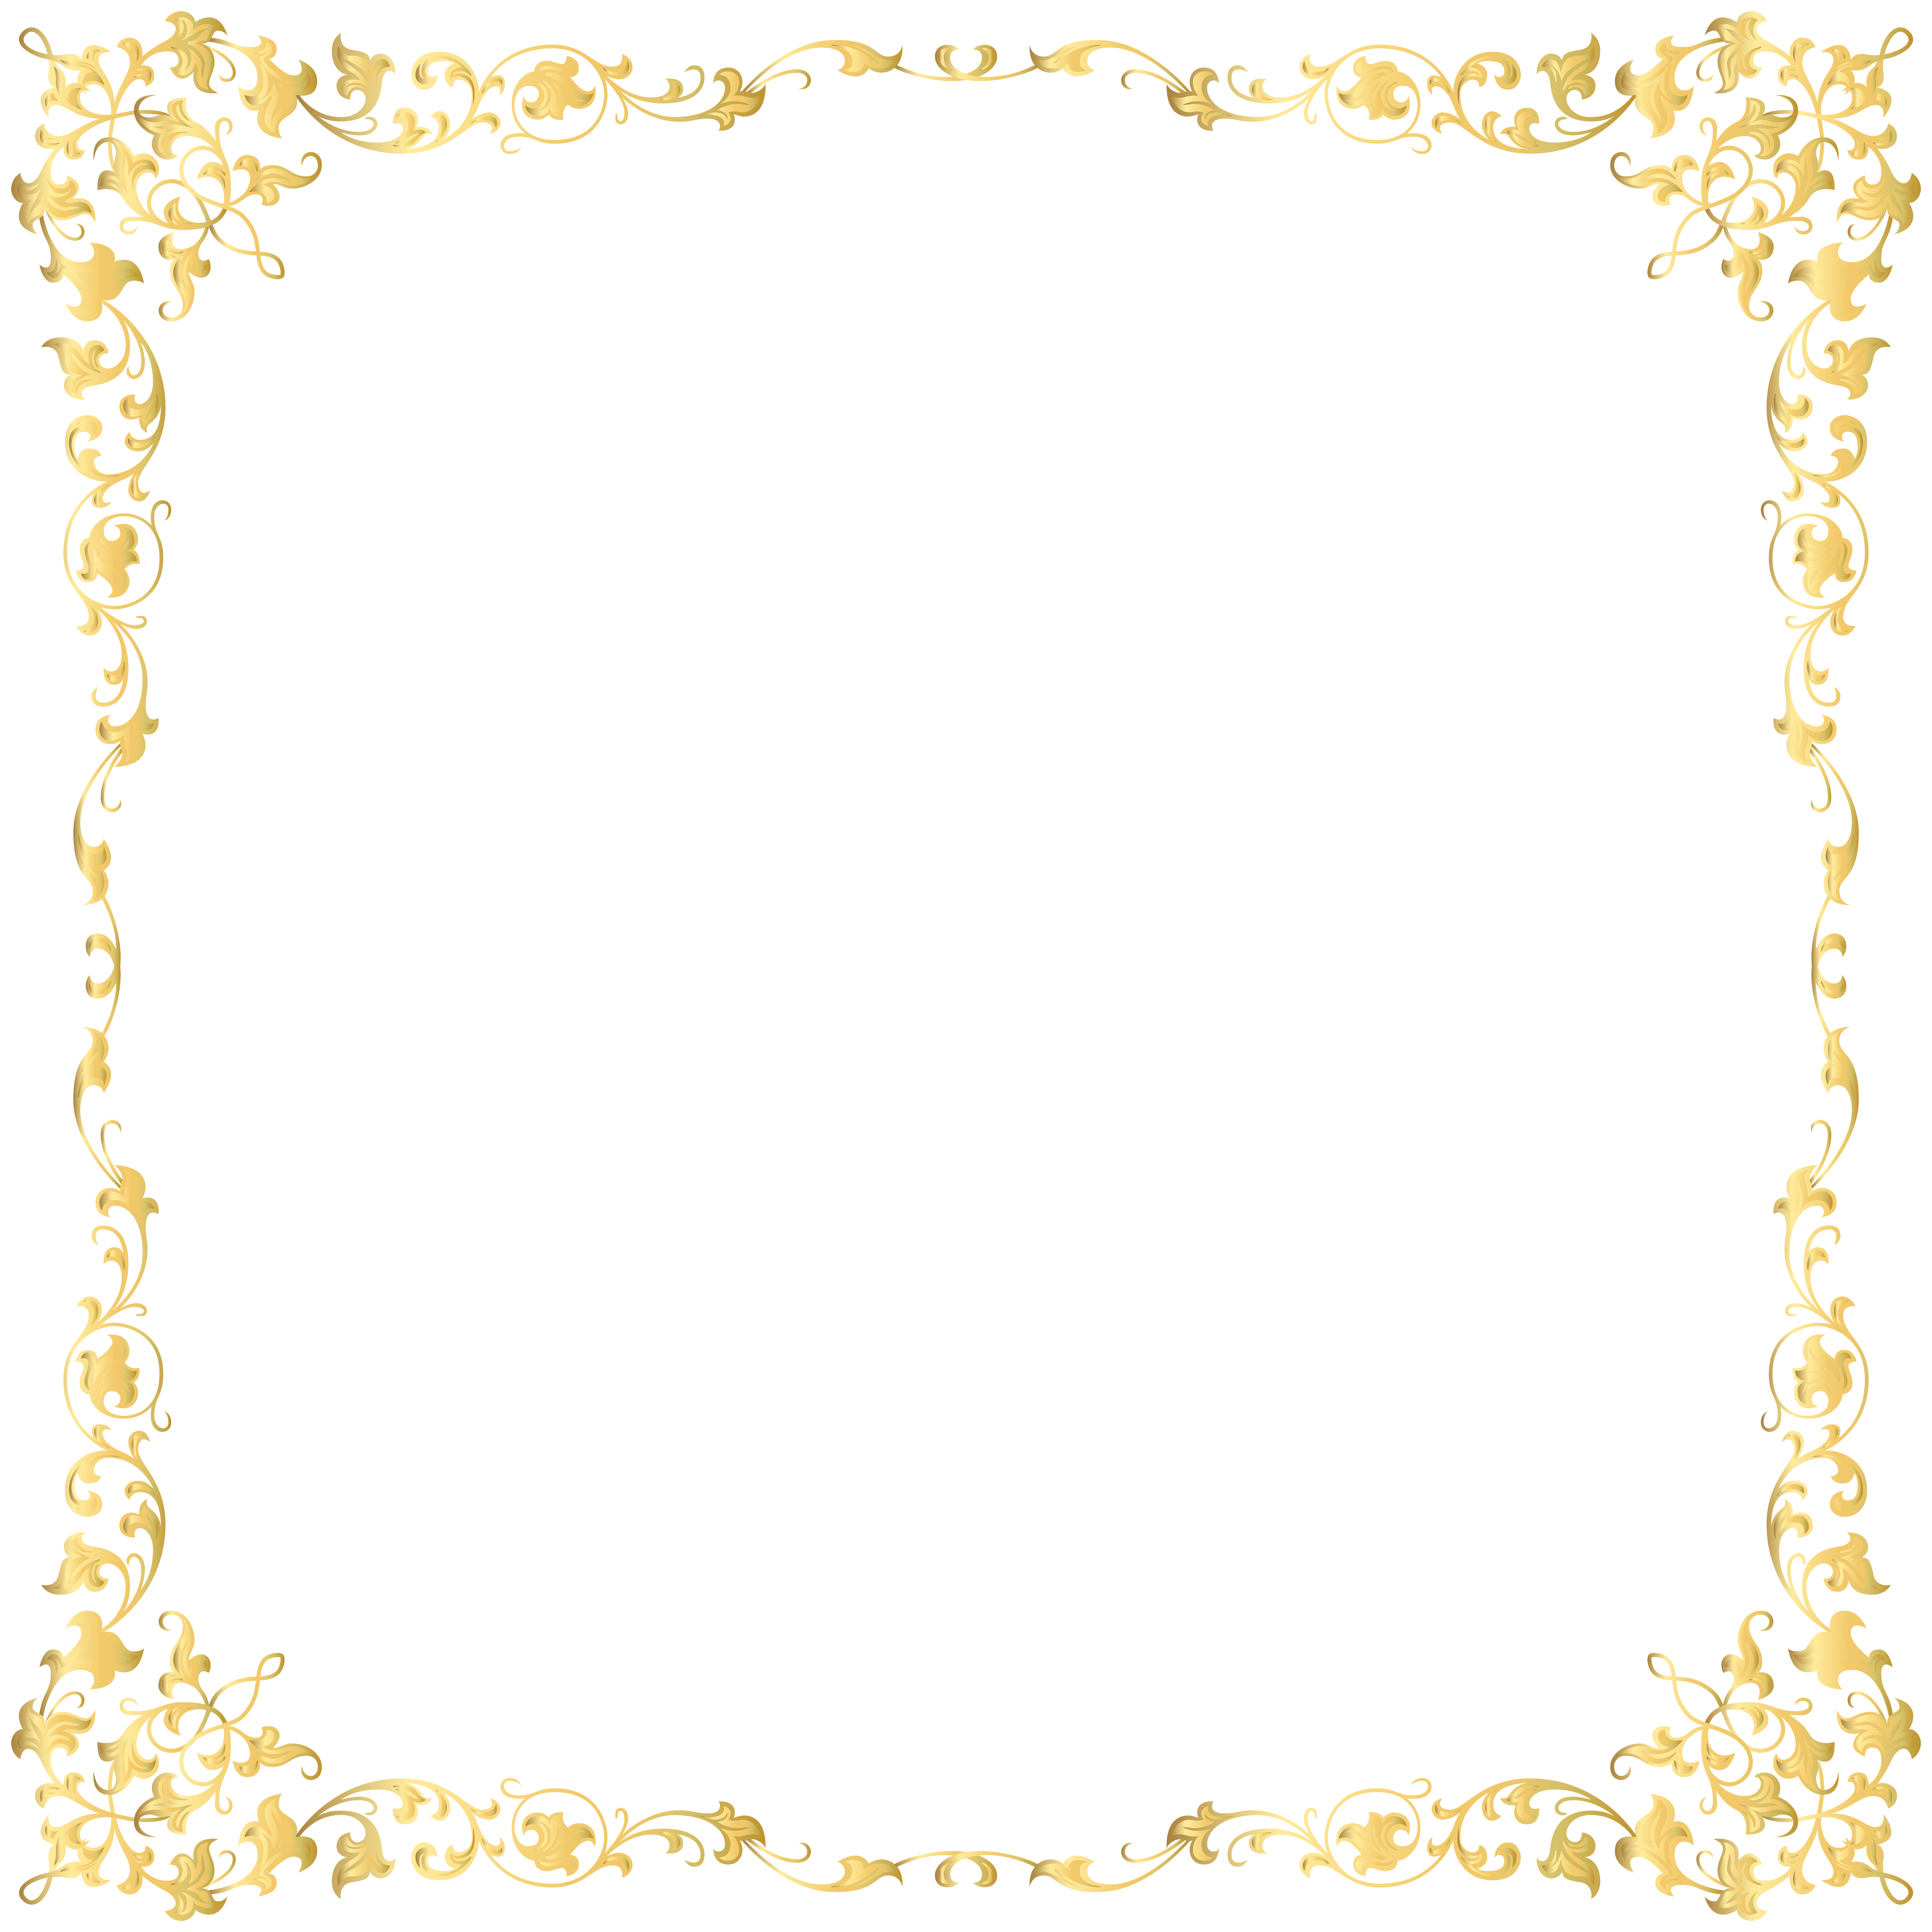 Decorative Transparent Border Png Image Gallery Yopriceville High Quality Images And Transparent Png Free Clipart Free Clip Art Glitter Wallpaper Image